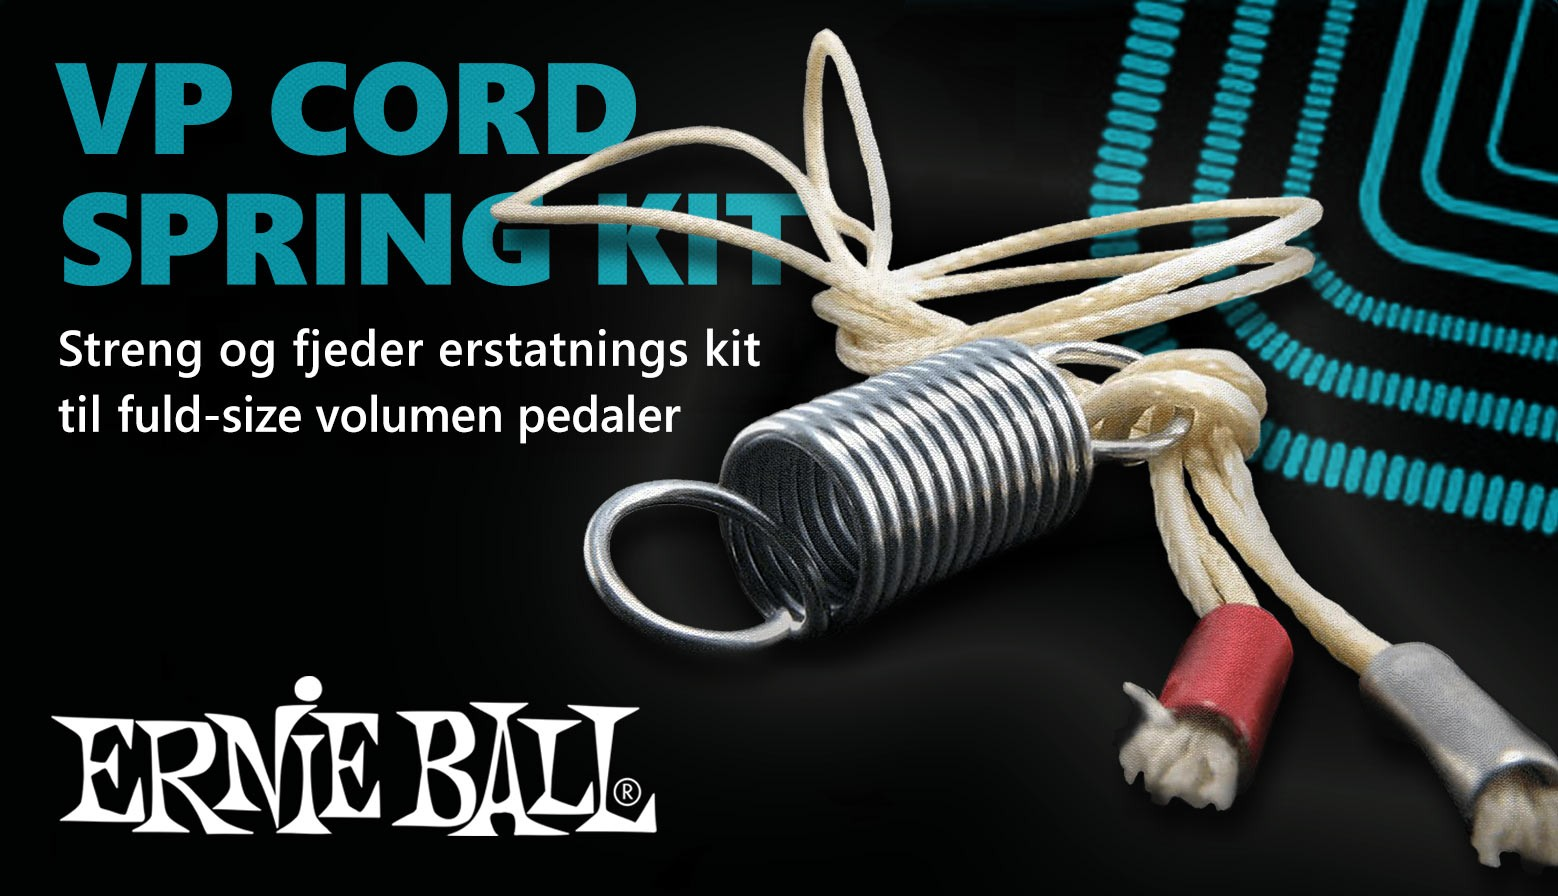 Ernie Ball VP Cord/​Spring Kit